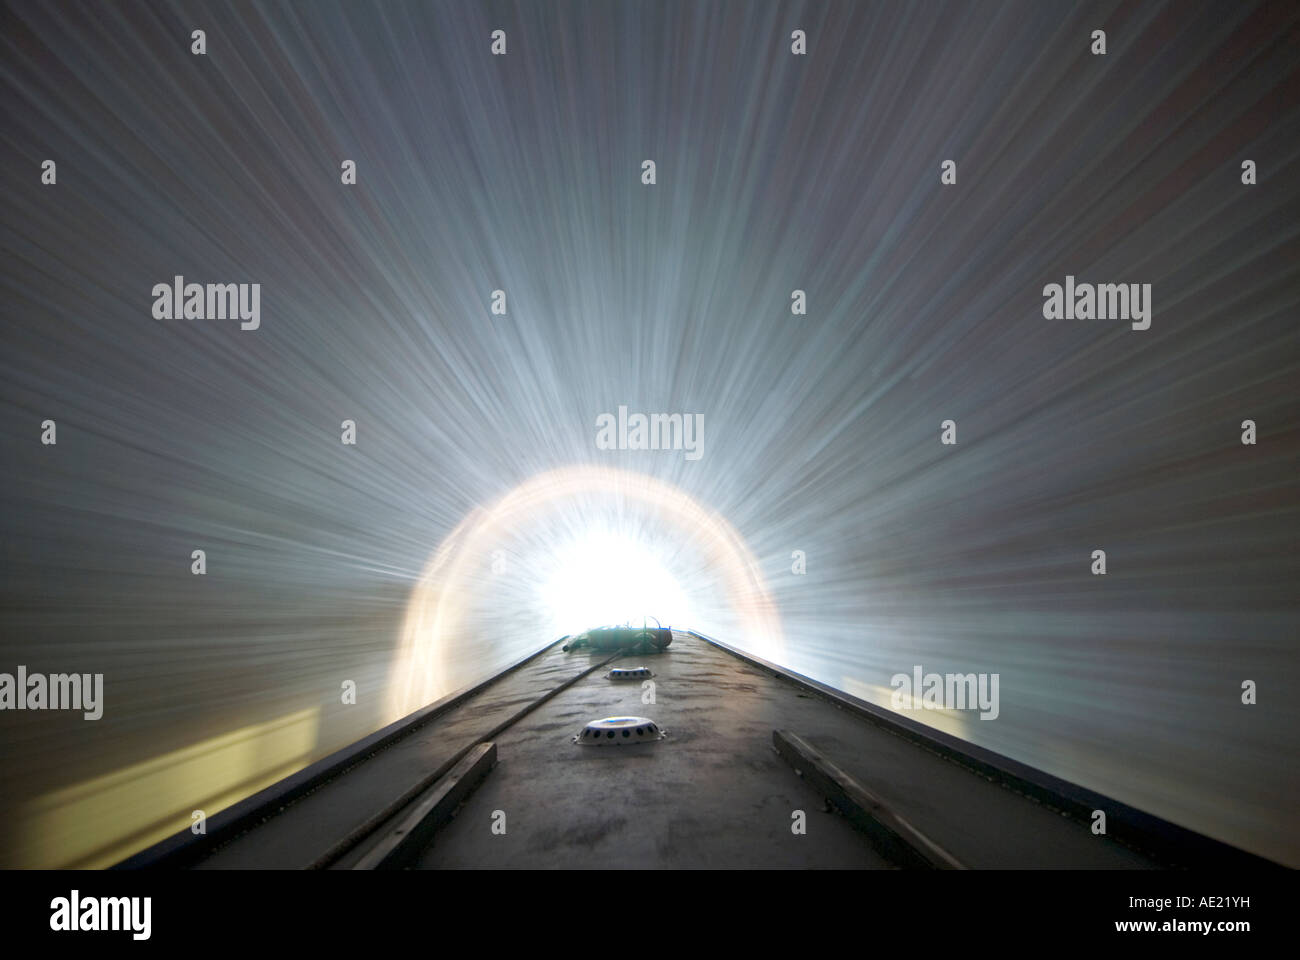 Navigating through a canal tunnel on a narrowboat picture taken with a slow shutter speed to give a motion effect - Stock Image